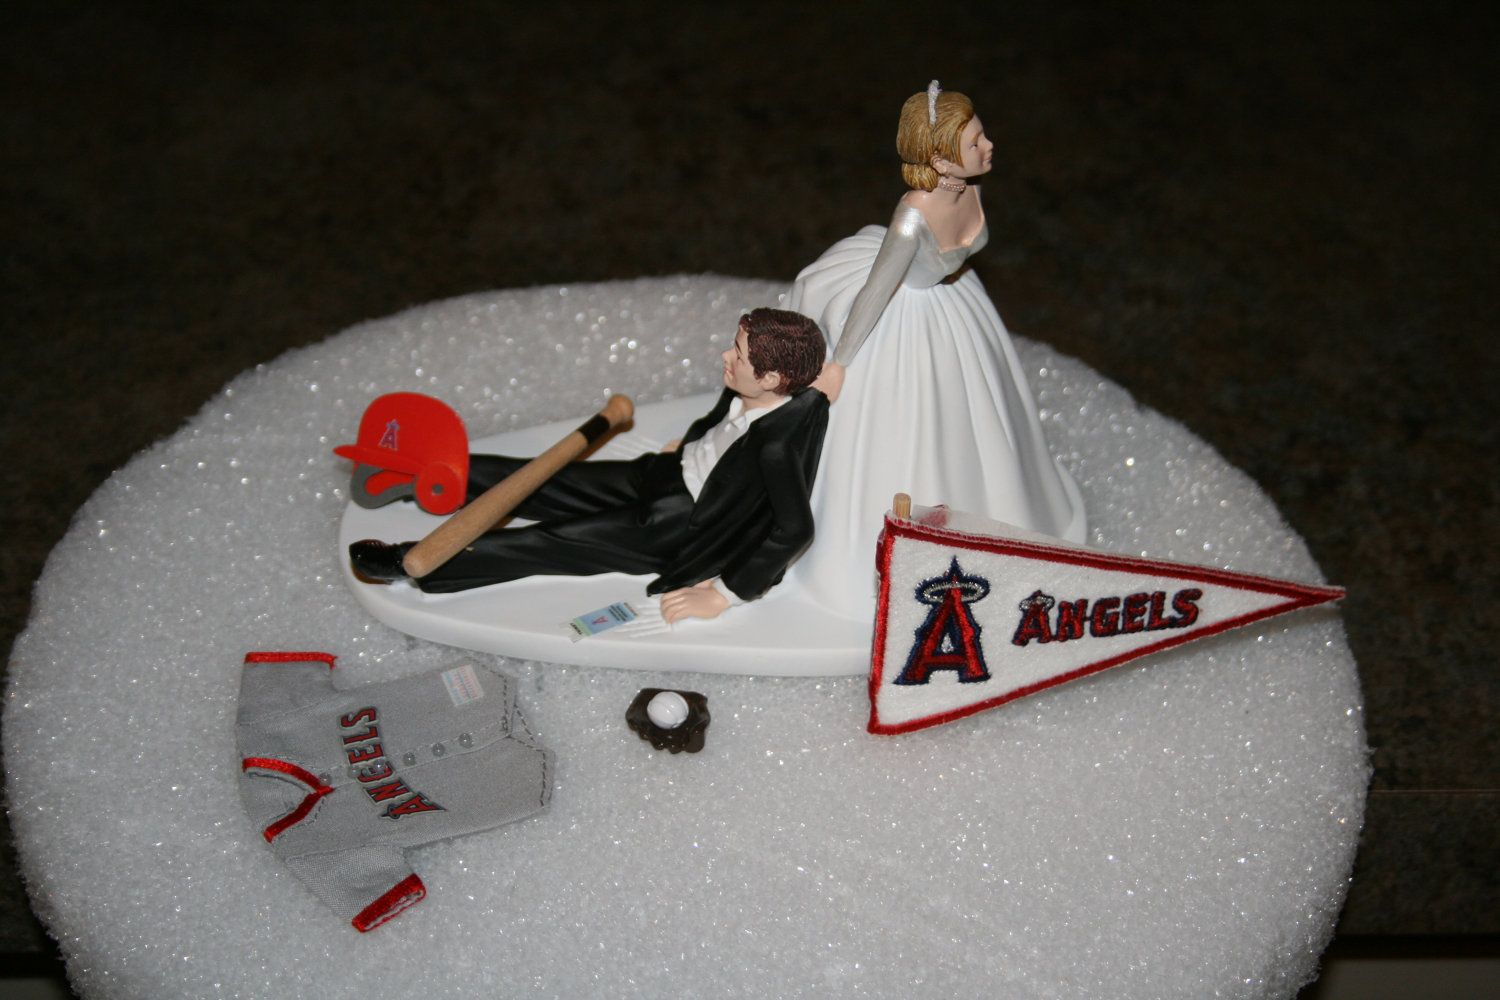 Los Angeles Angels Anaheim BASEBALL Wedding Cake By